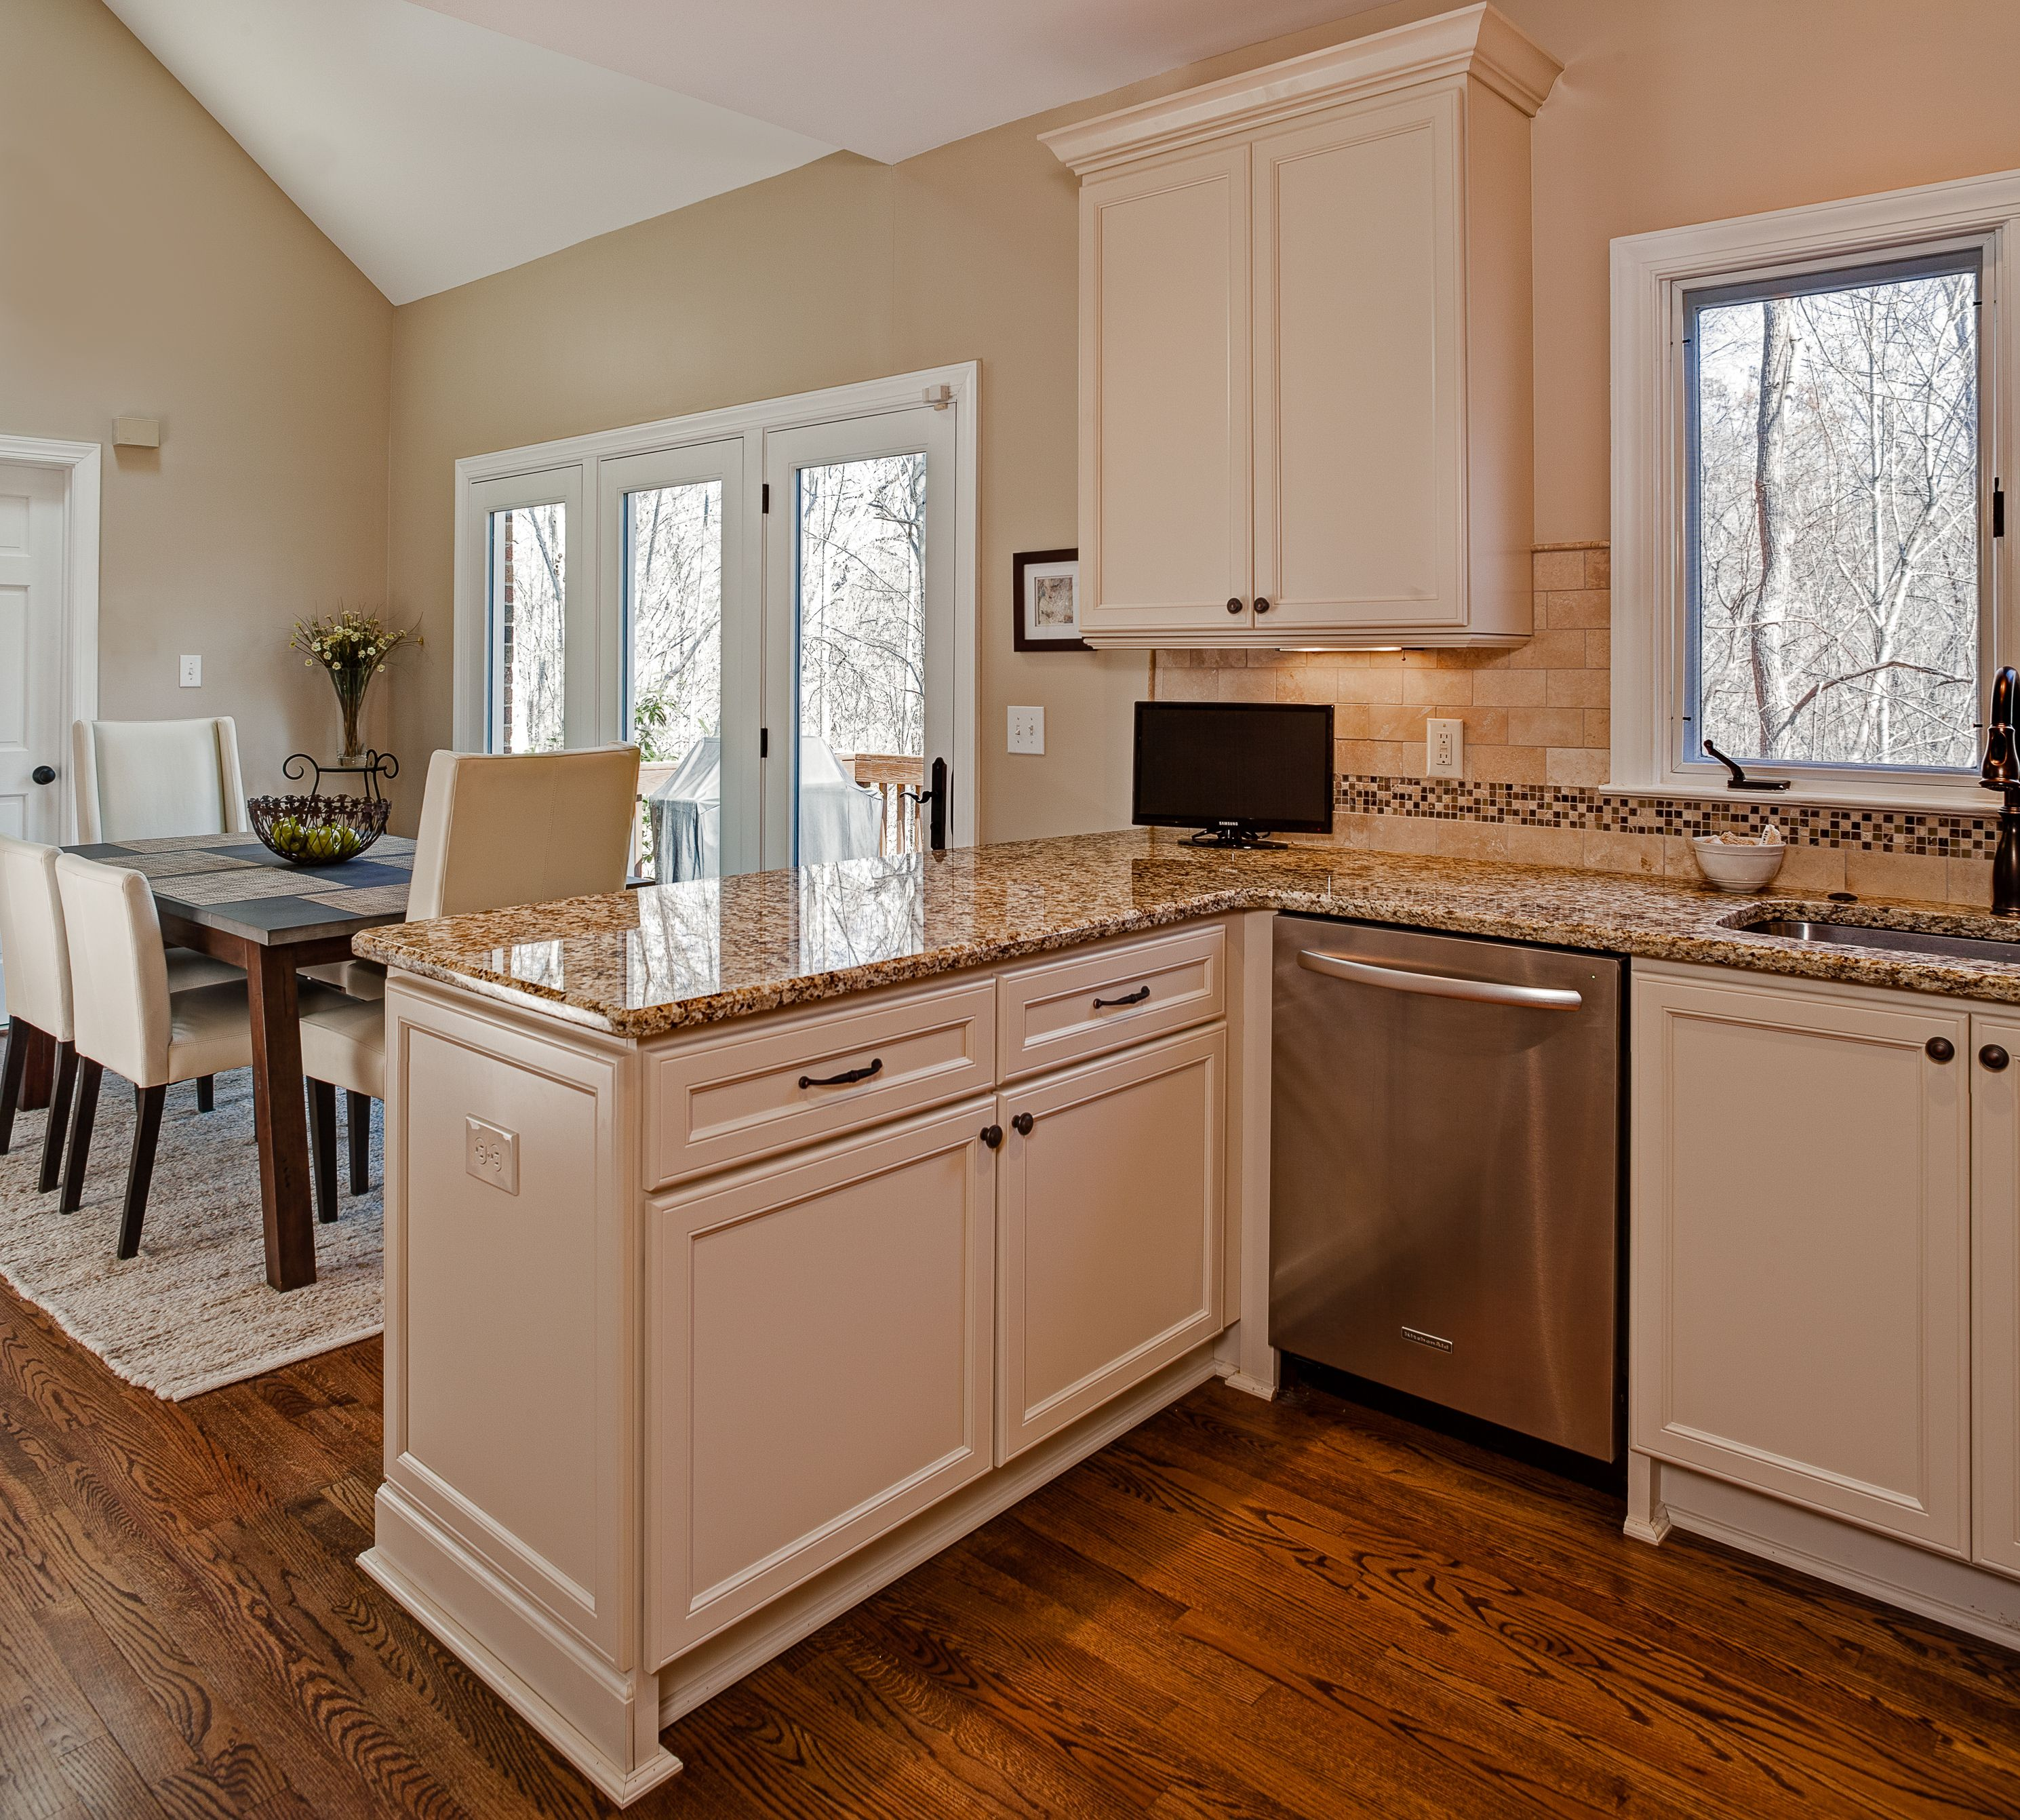 1000+ images about Kitchen - Peninsula and narrow islands on ...